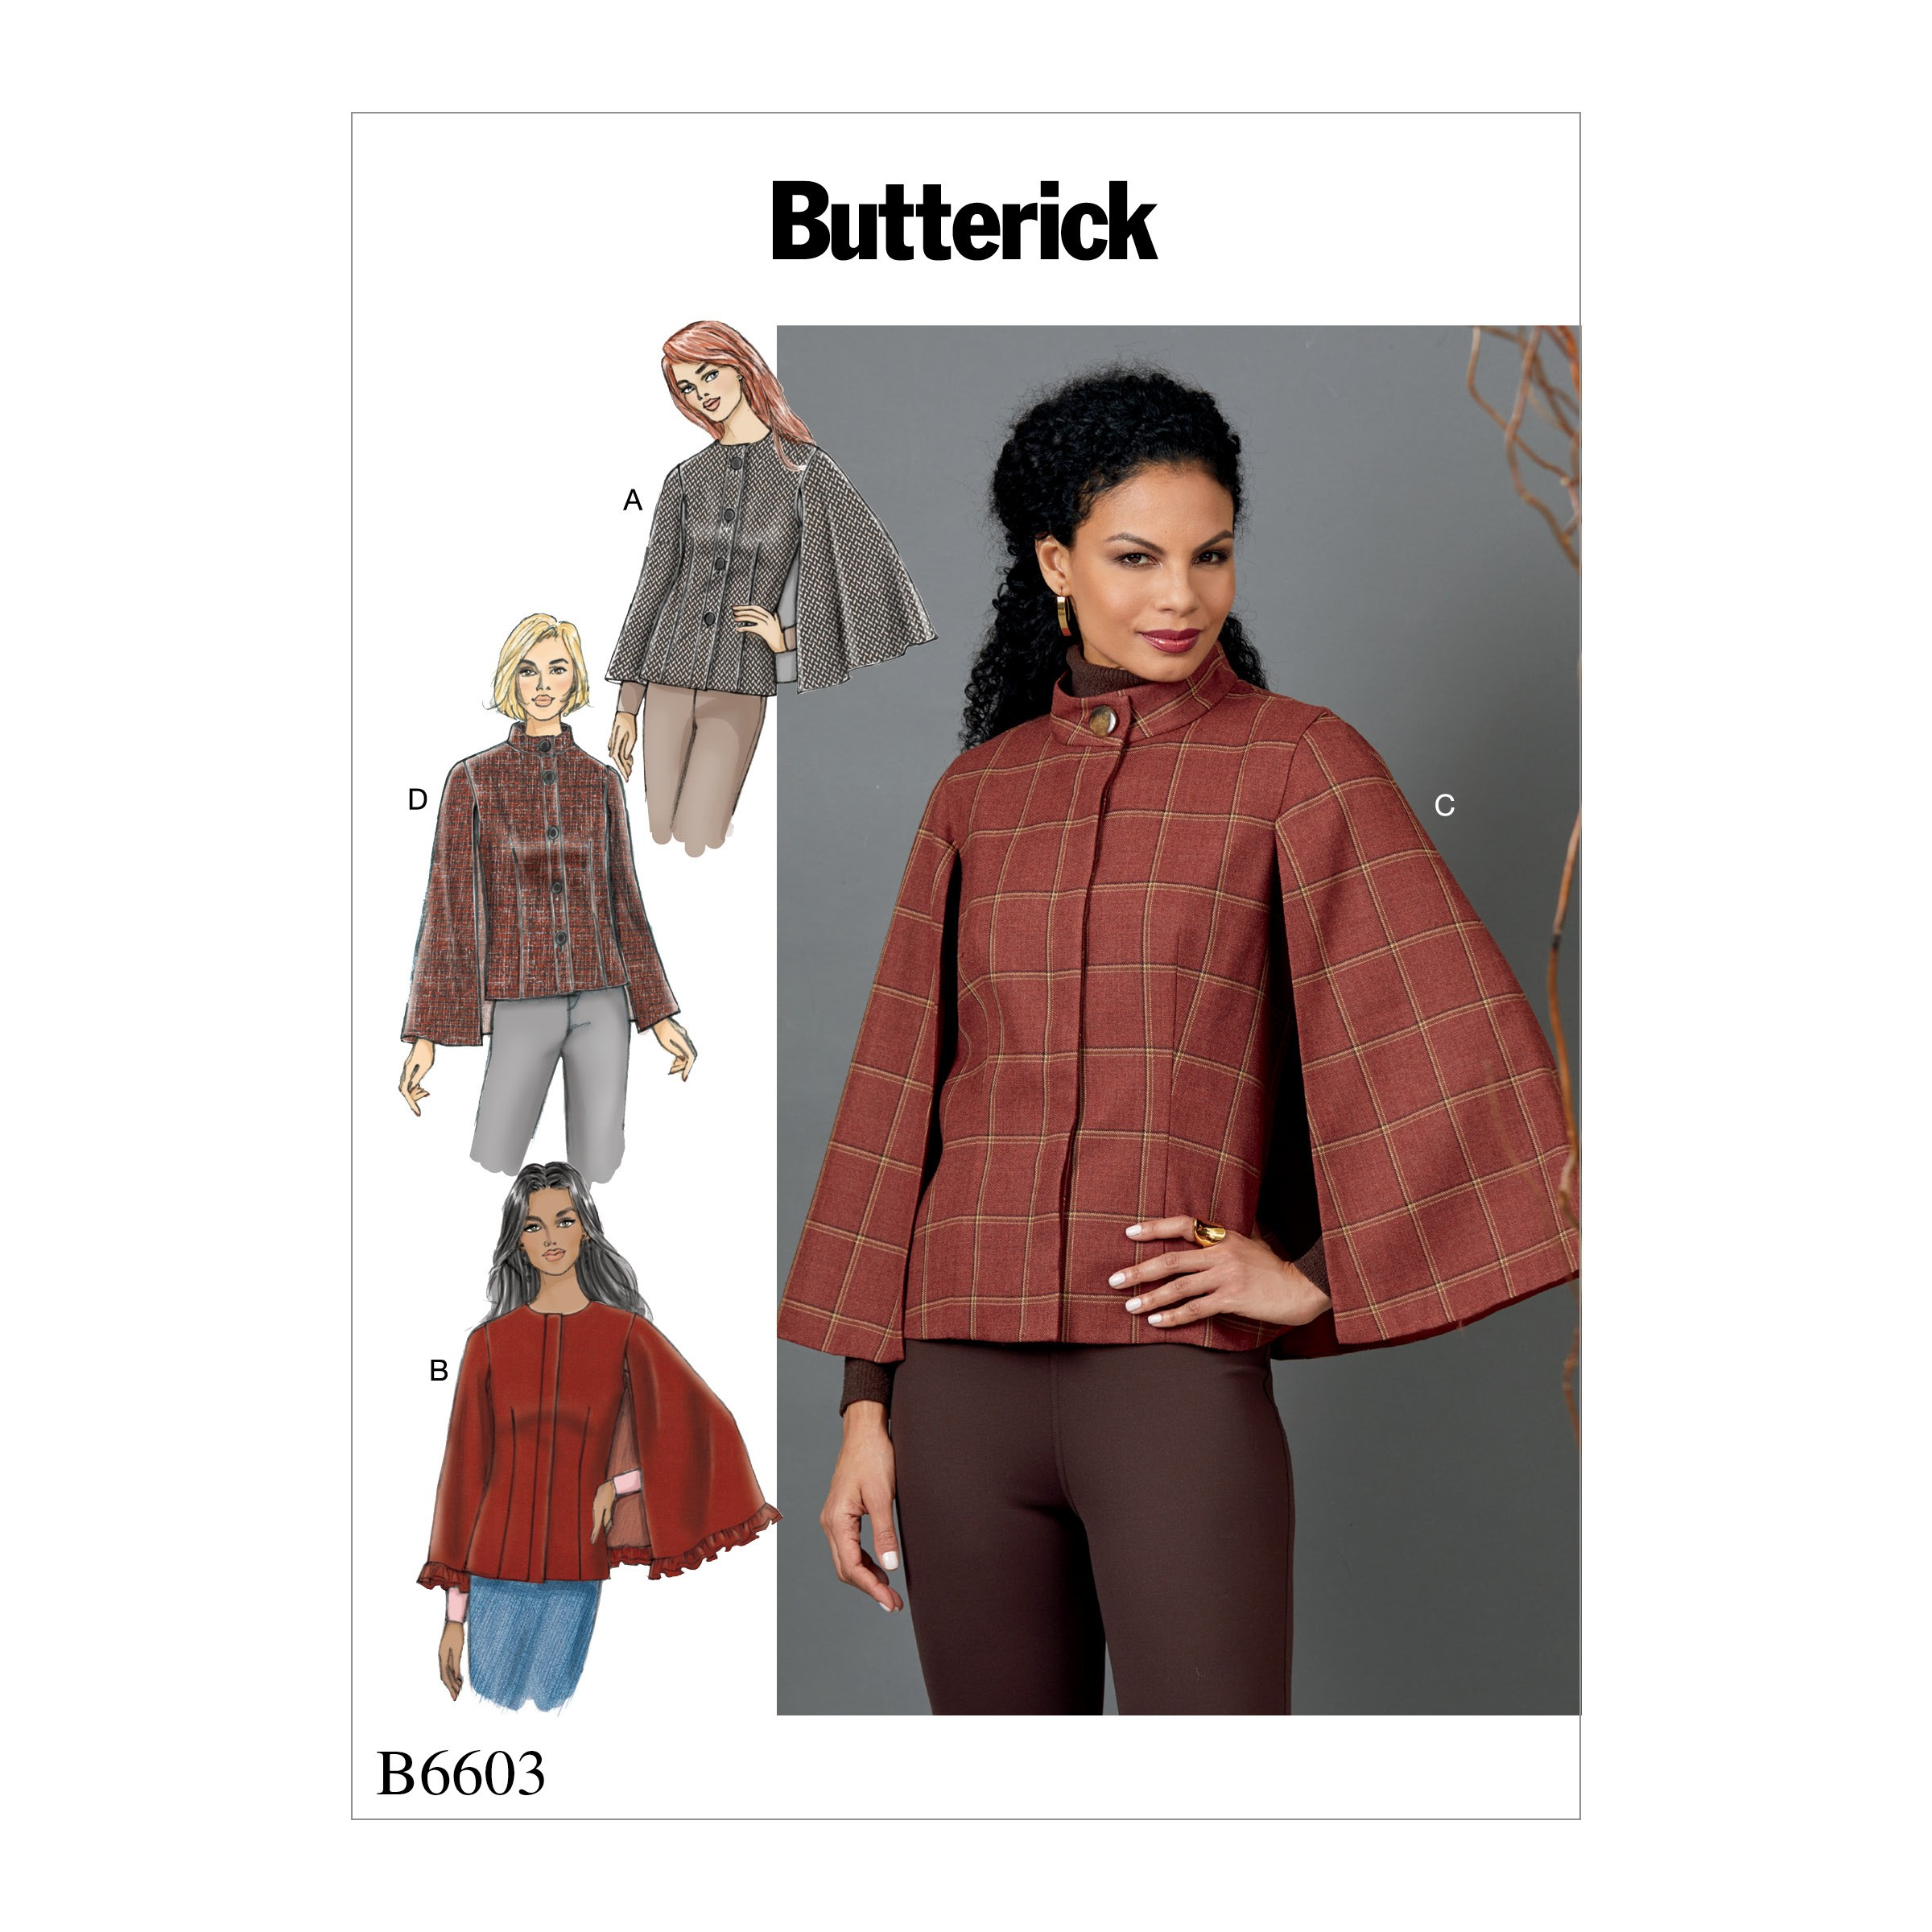 Butterick Sewing Pattern 6603 Misses' Casual Loungewear Separates Mix and Match